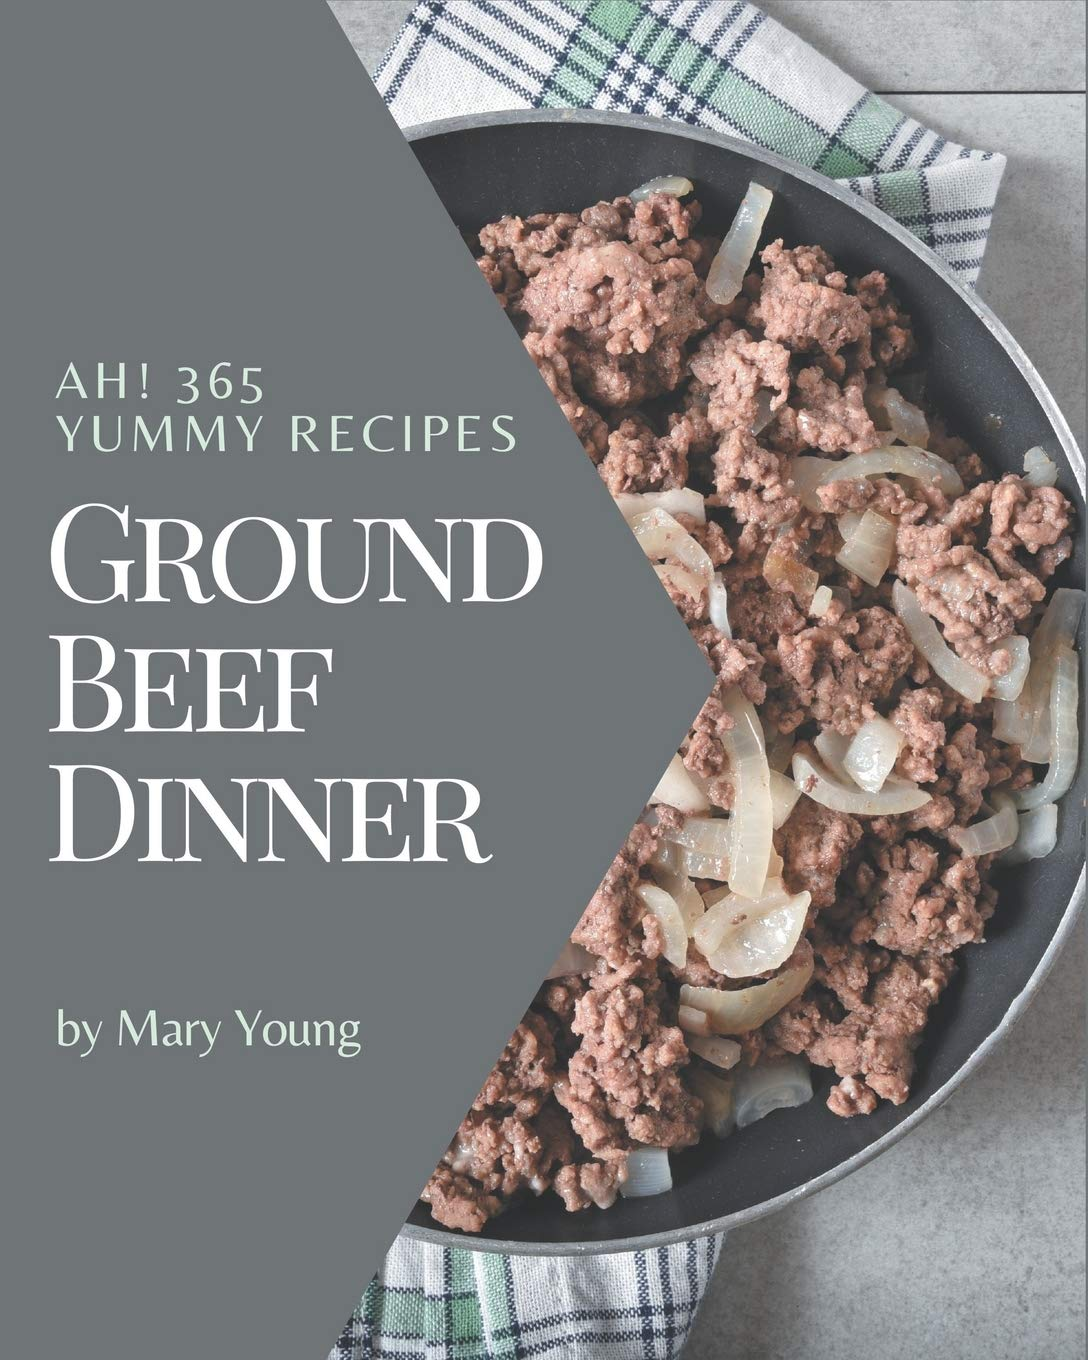 Ah 365 Yummy Ground Beef Dinner Recipes A Yummy Ground Beef Dinner Cookbook Everyone Loves Amazon Co Uk Young Mary 9798684318948 Books